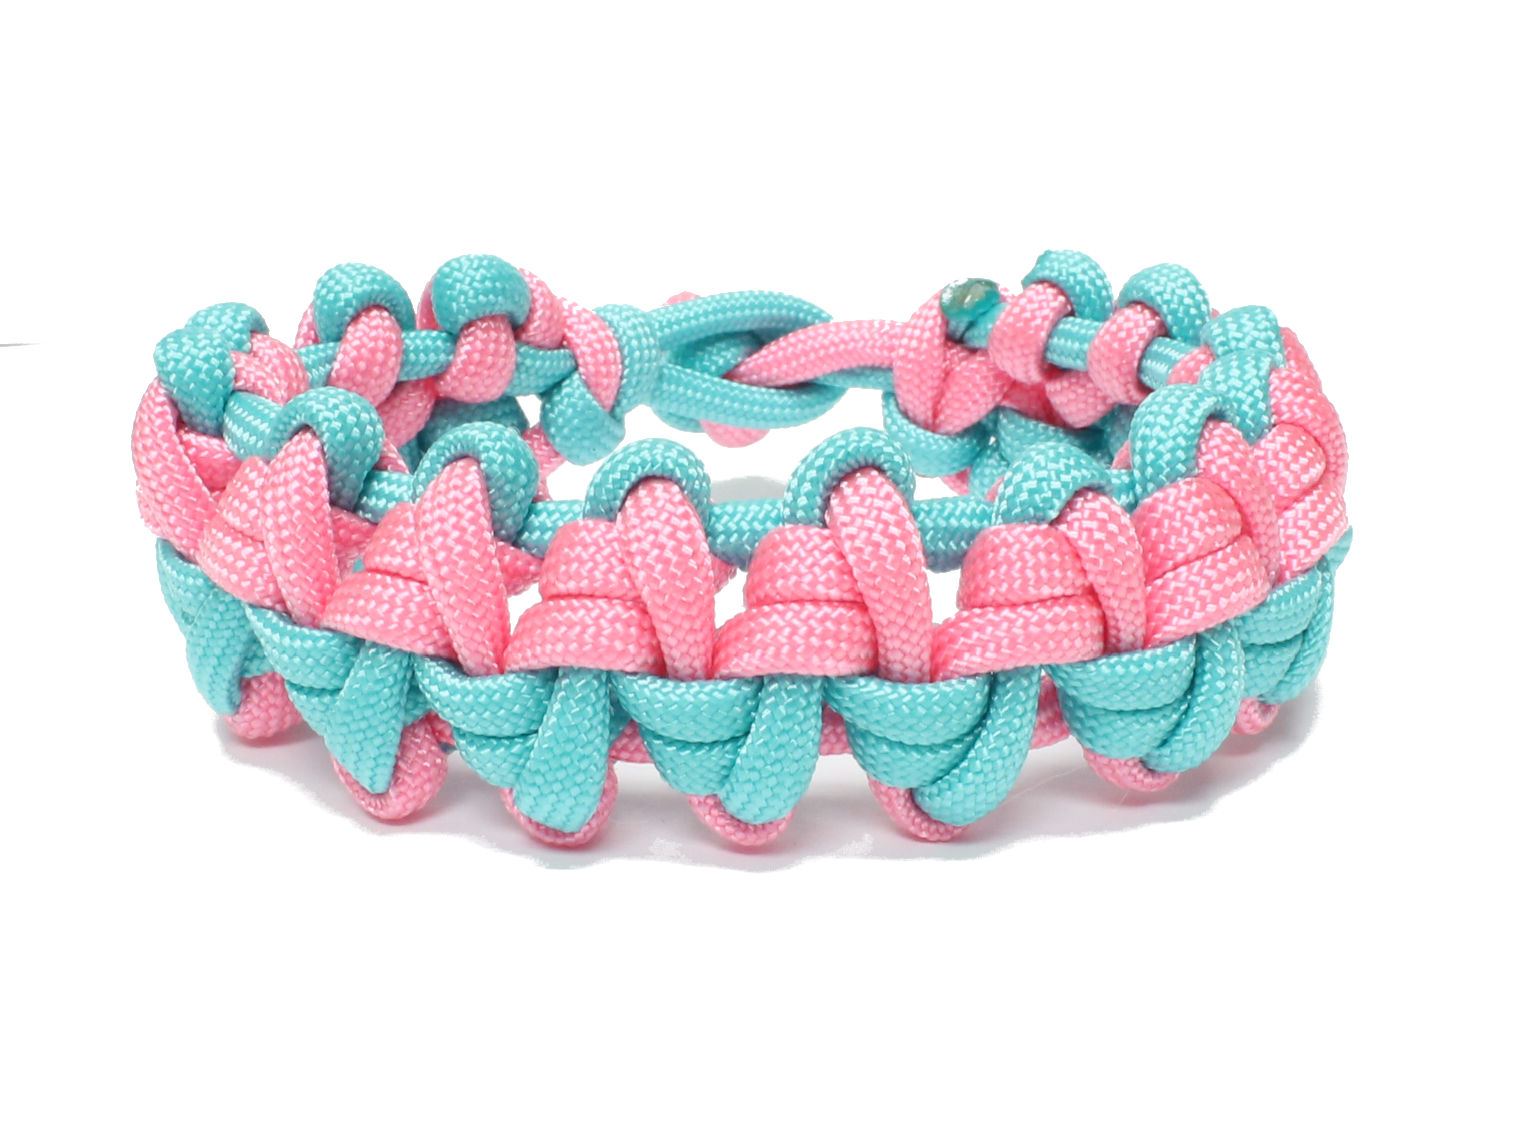 operation gratitude paracord bracelet instructions